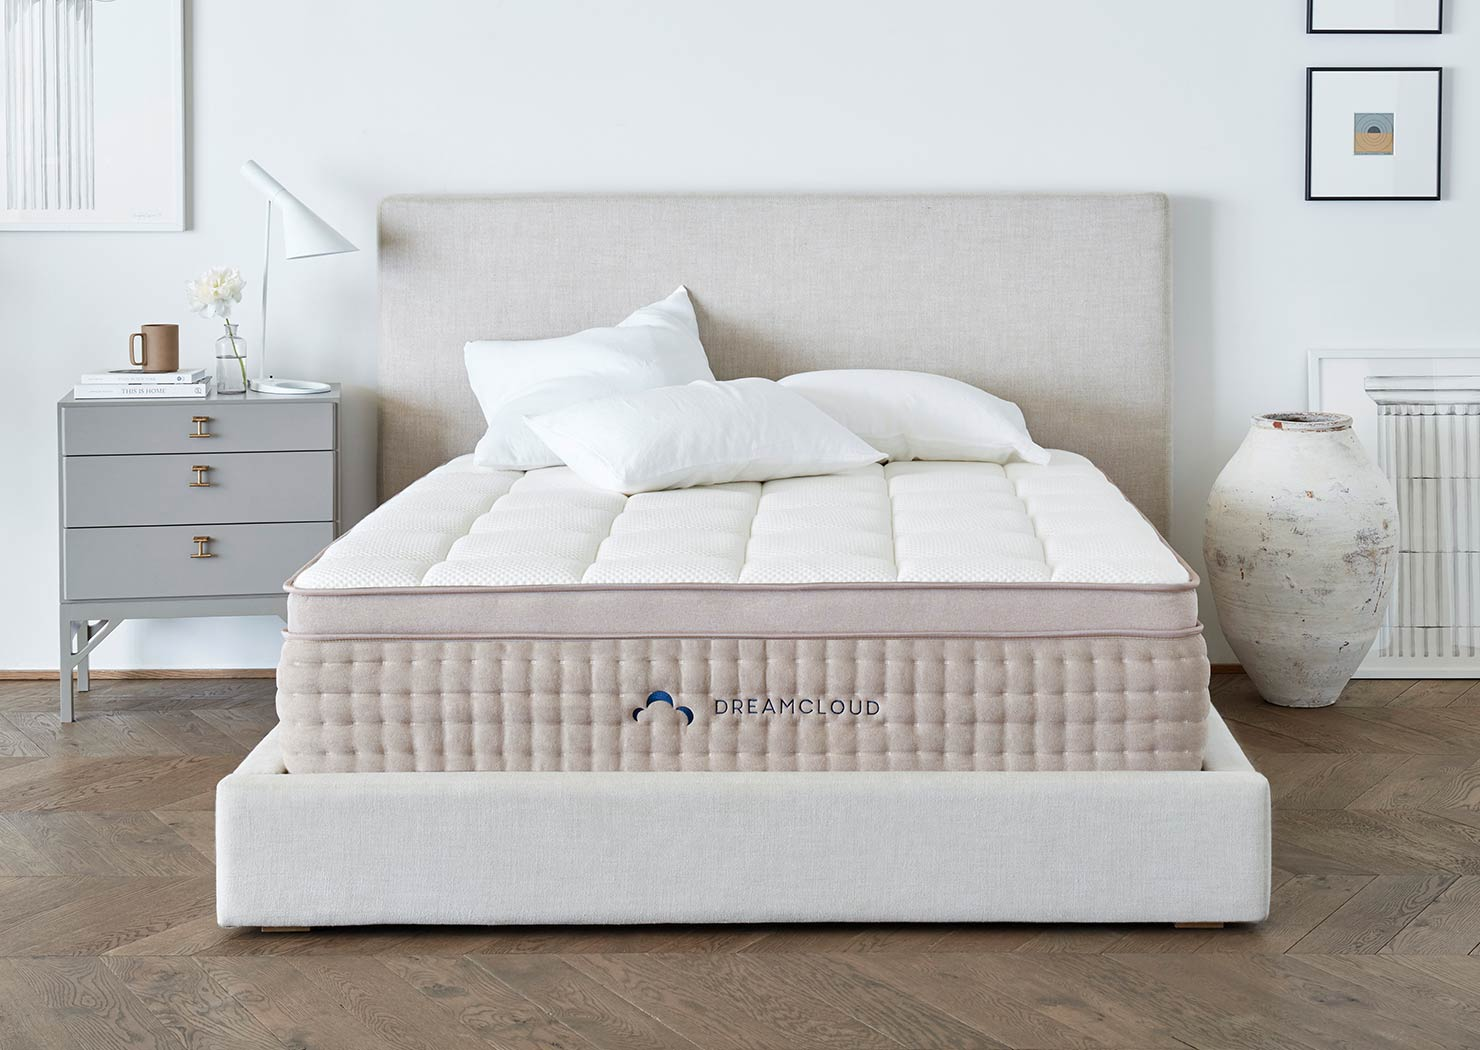 """The DreamCloud Luxury Mattress, hand crafted one at a time by a company I really like, called Resident Brands. For the price, it has no equal in the """"bed in a box"""" category."""